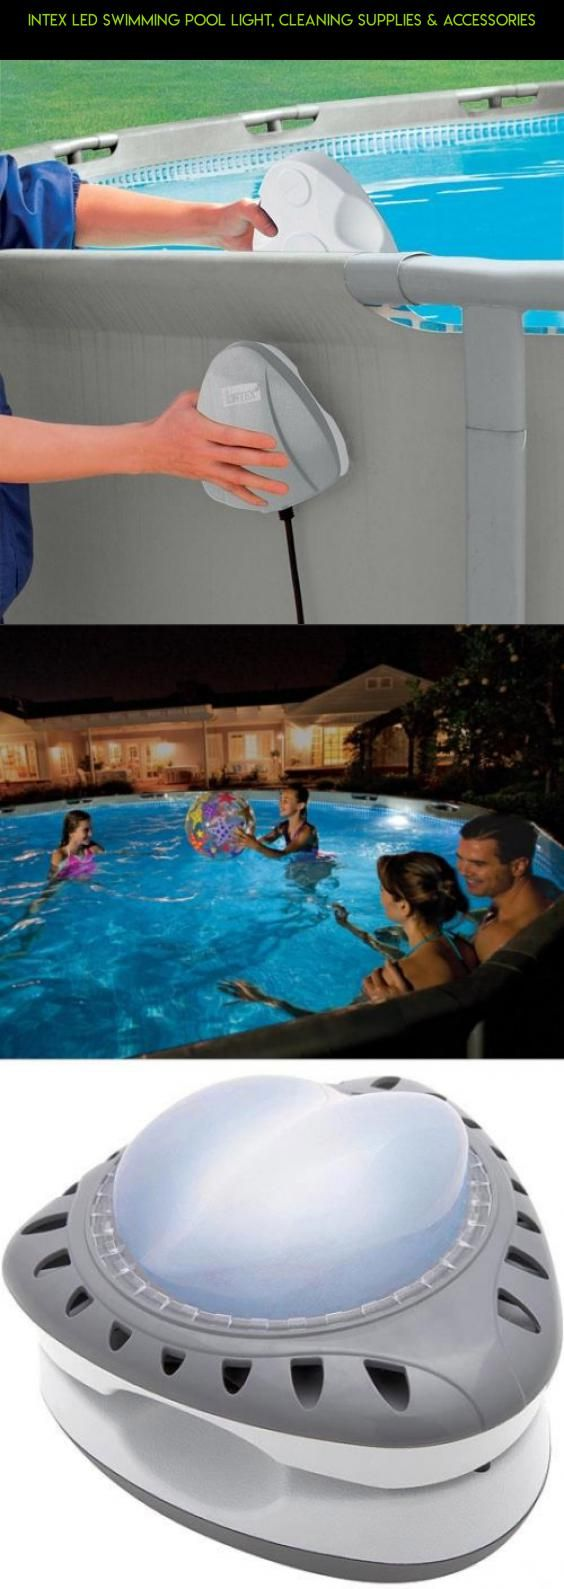 25 best ideas about intex swimming pool on pinterest - Led swimming pool lights suppliers ...